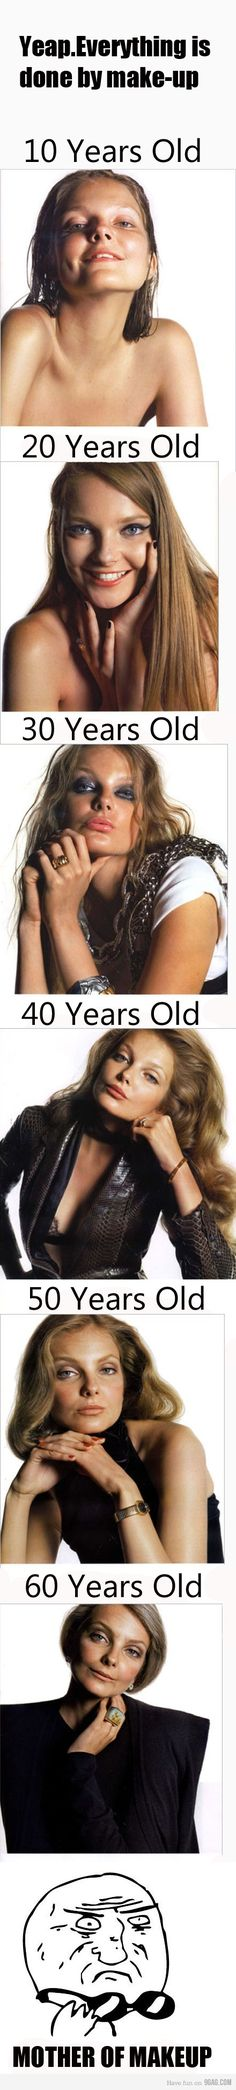 make-up transformation.... from 10yrs old to 60yrs old... one person... S